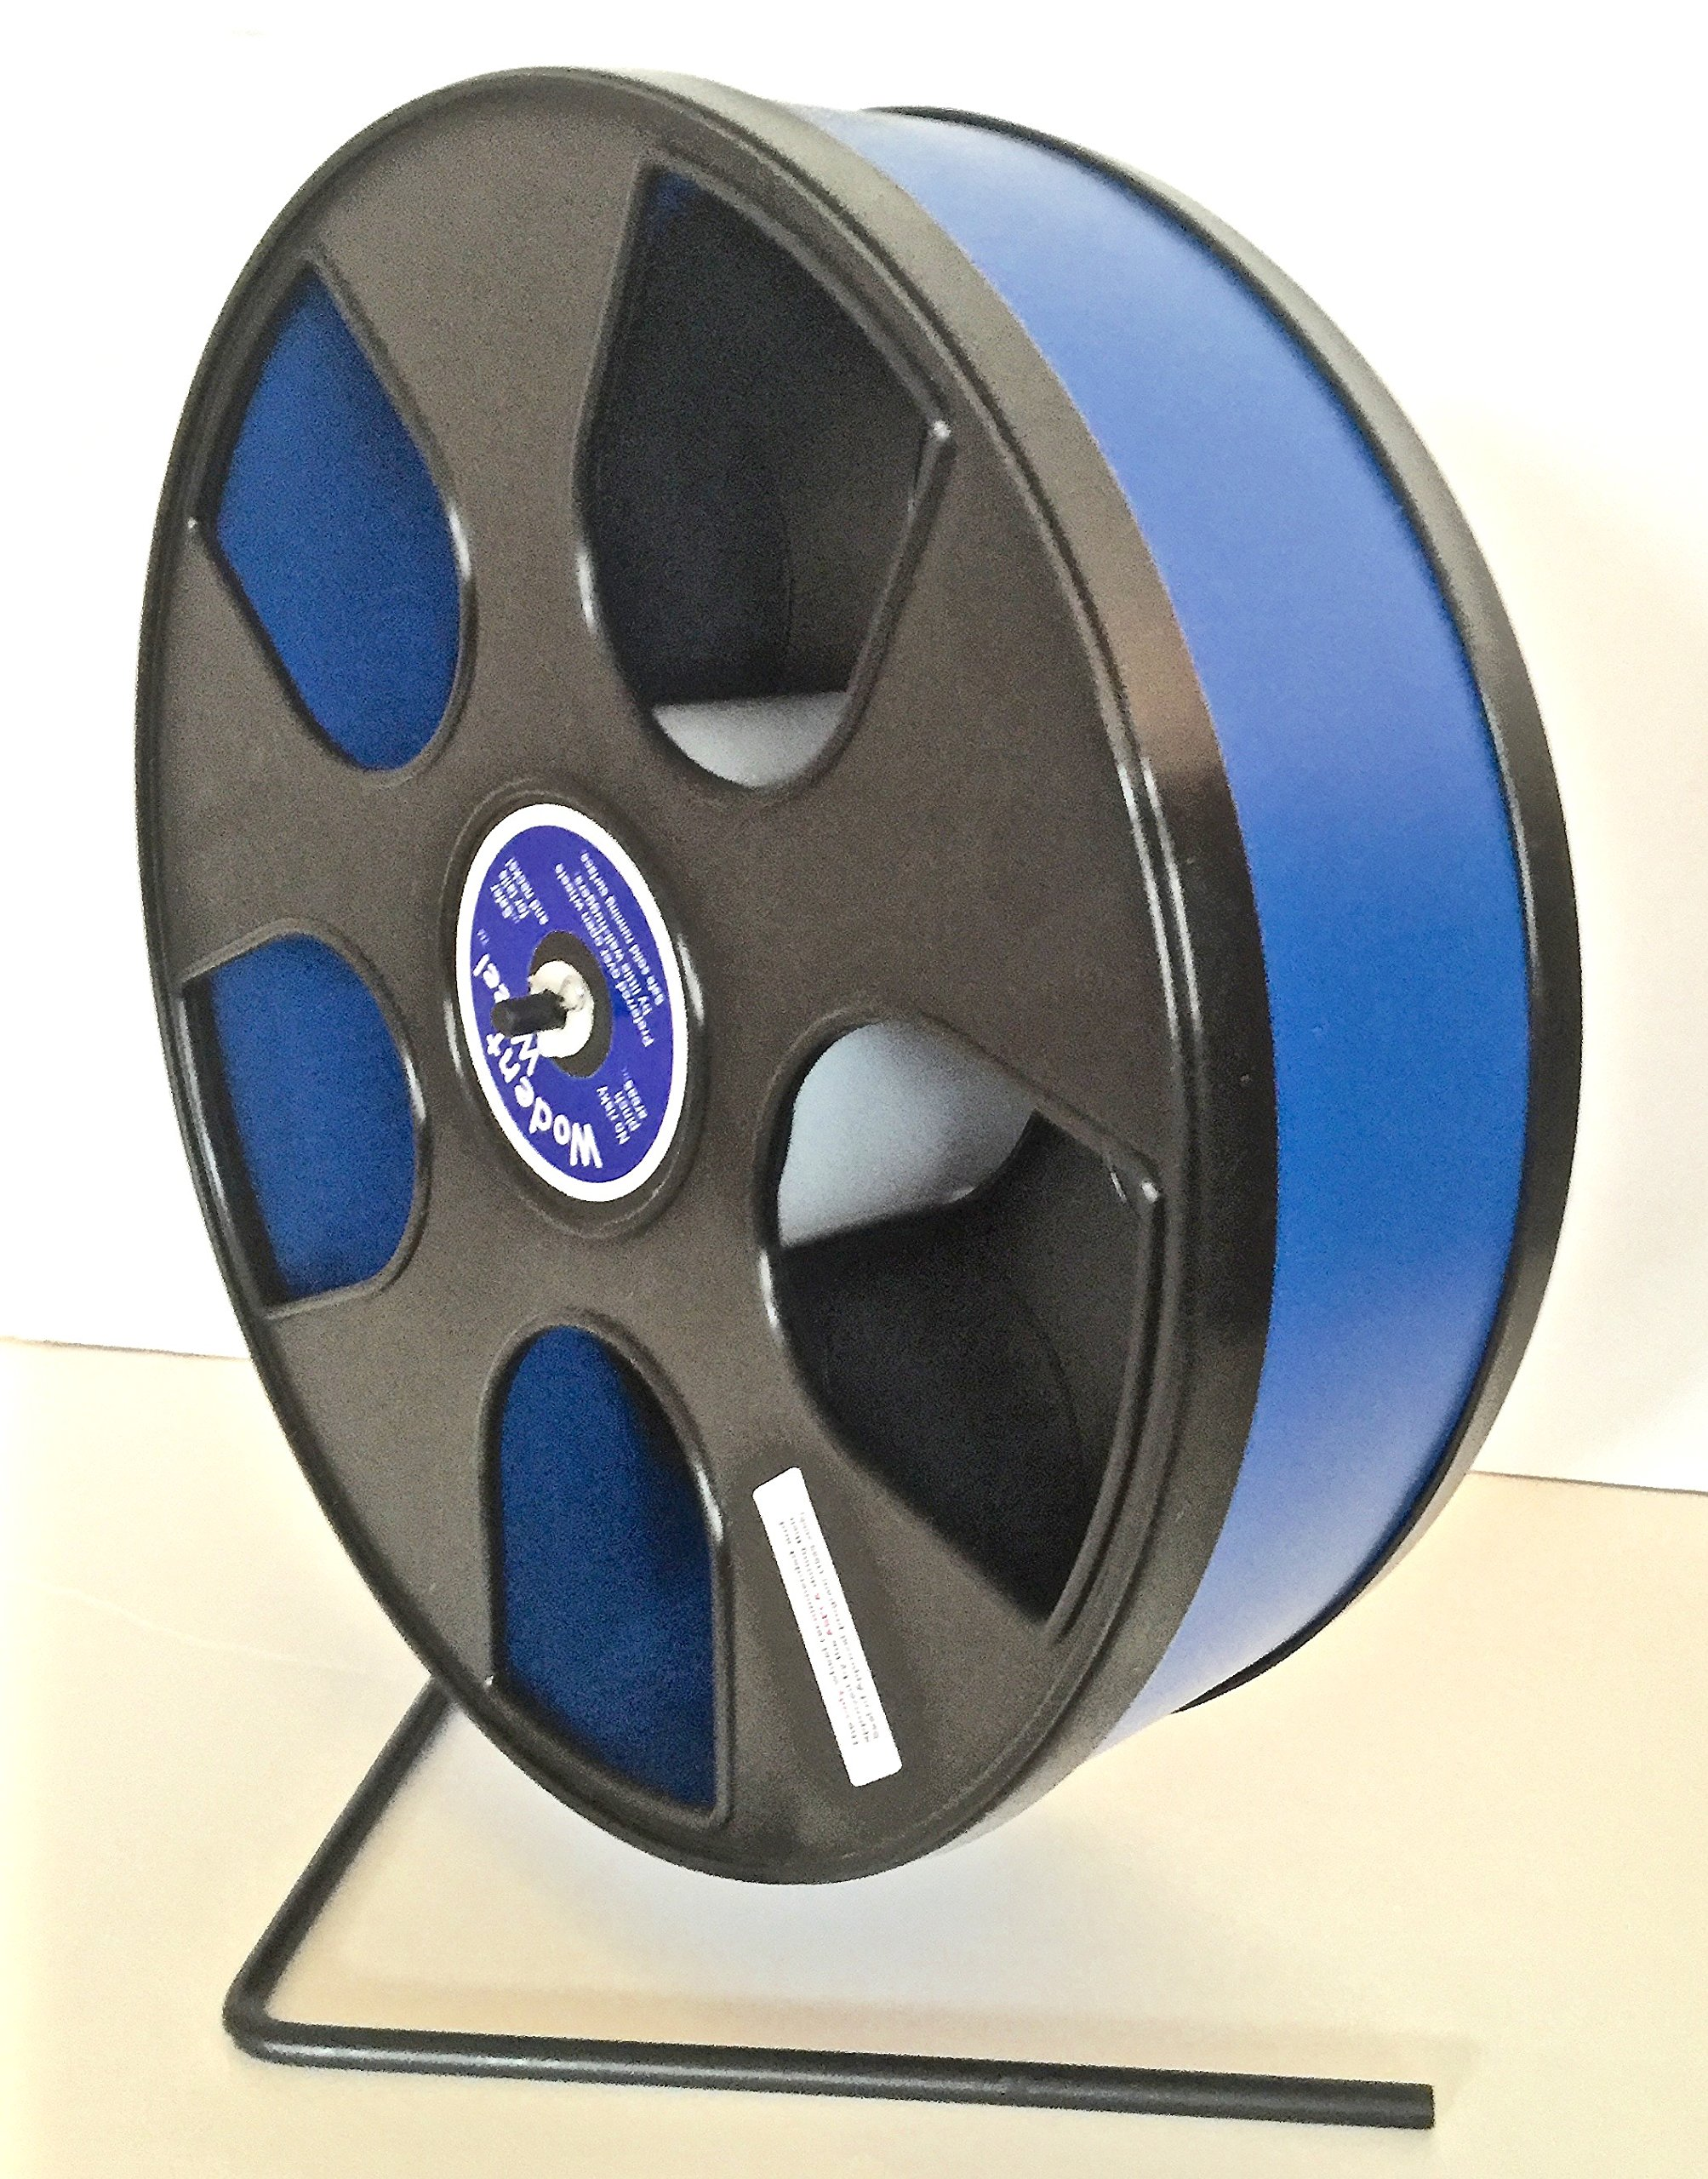 CHINCHILLA, HEDGEHOG, MULTIPLE GLIDERS 12'' DIAMETER 'WODENT'' WHEEL WITH WIDE TRACK-BLACK WITH LIGHT BLUE TRACK